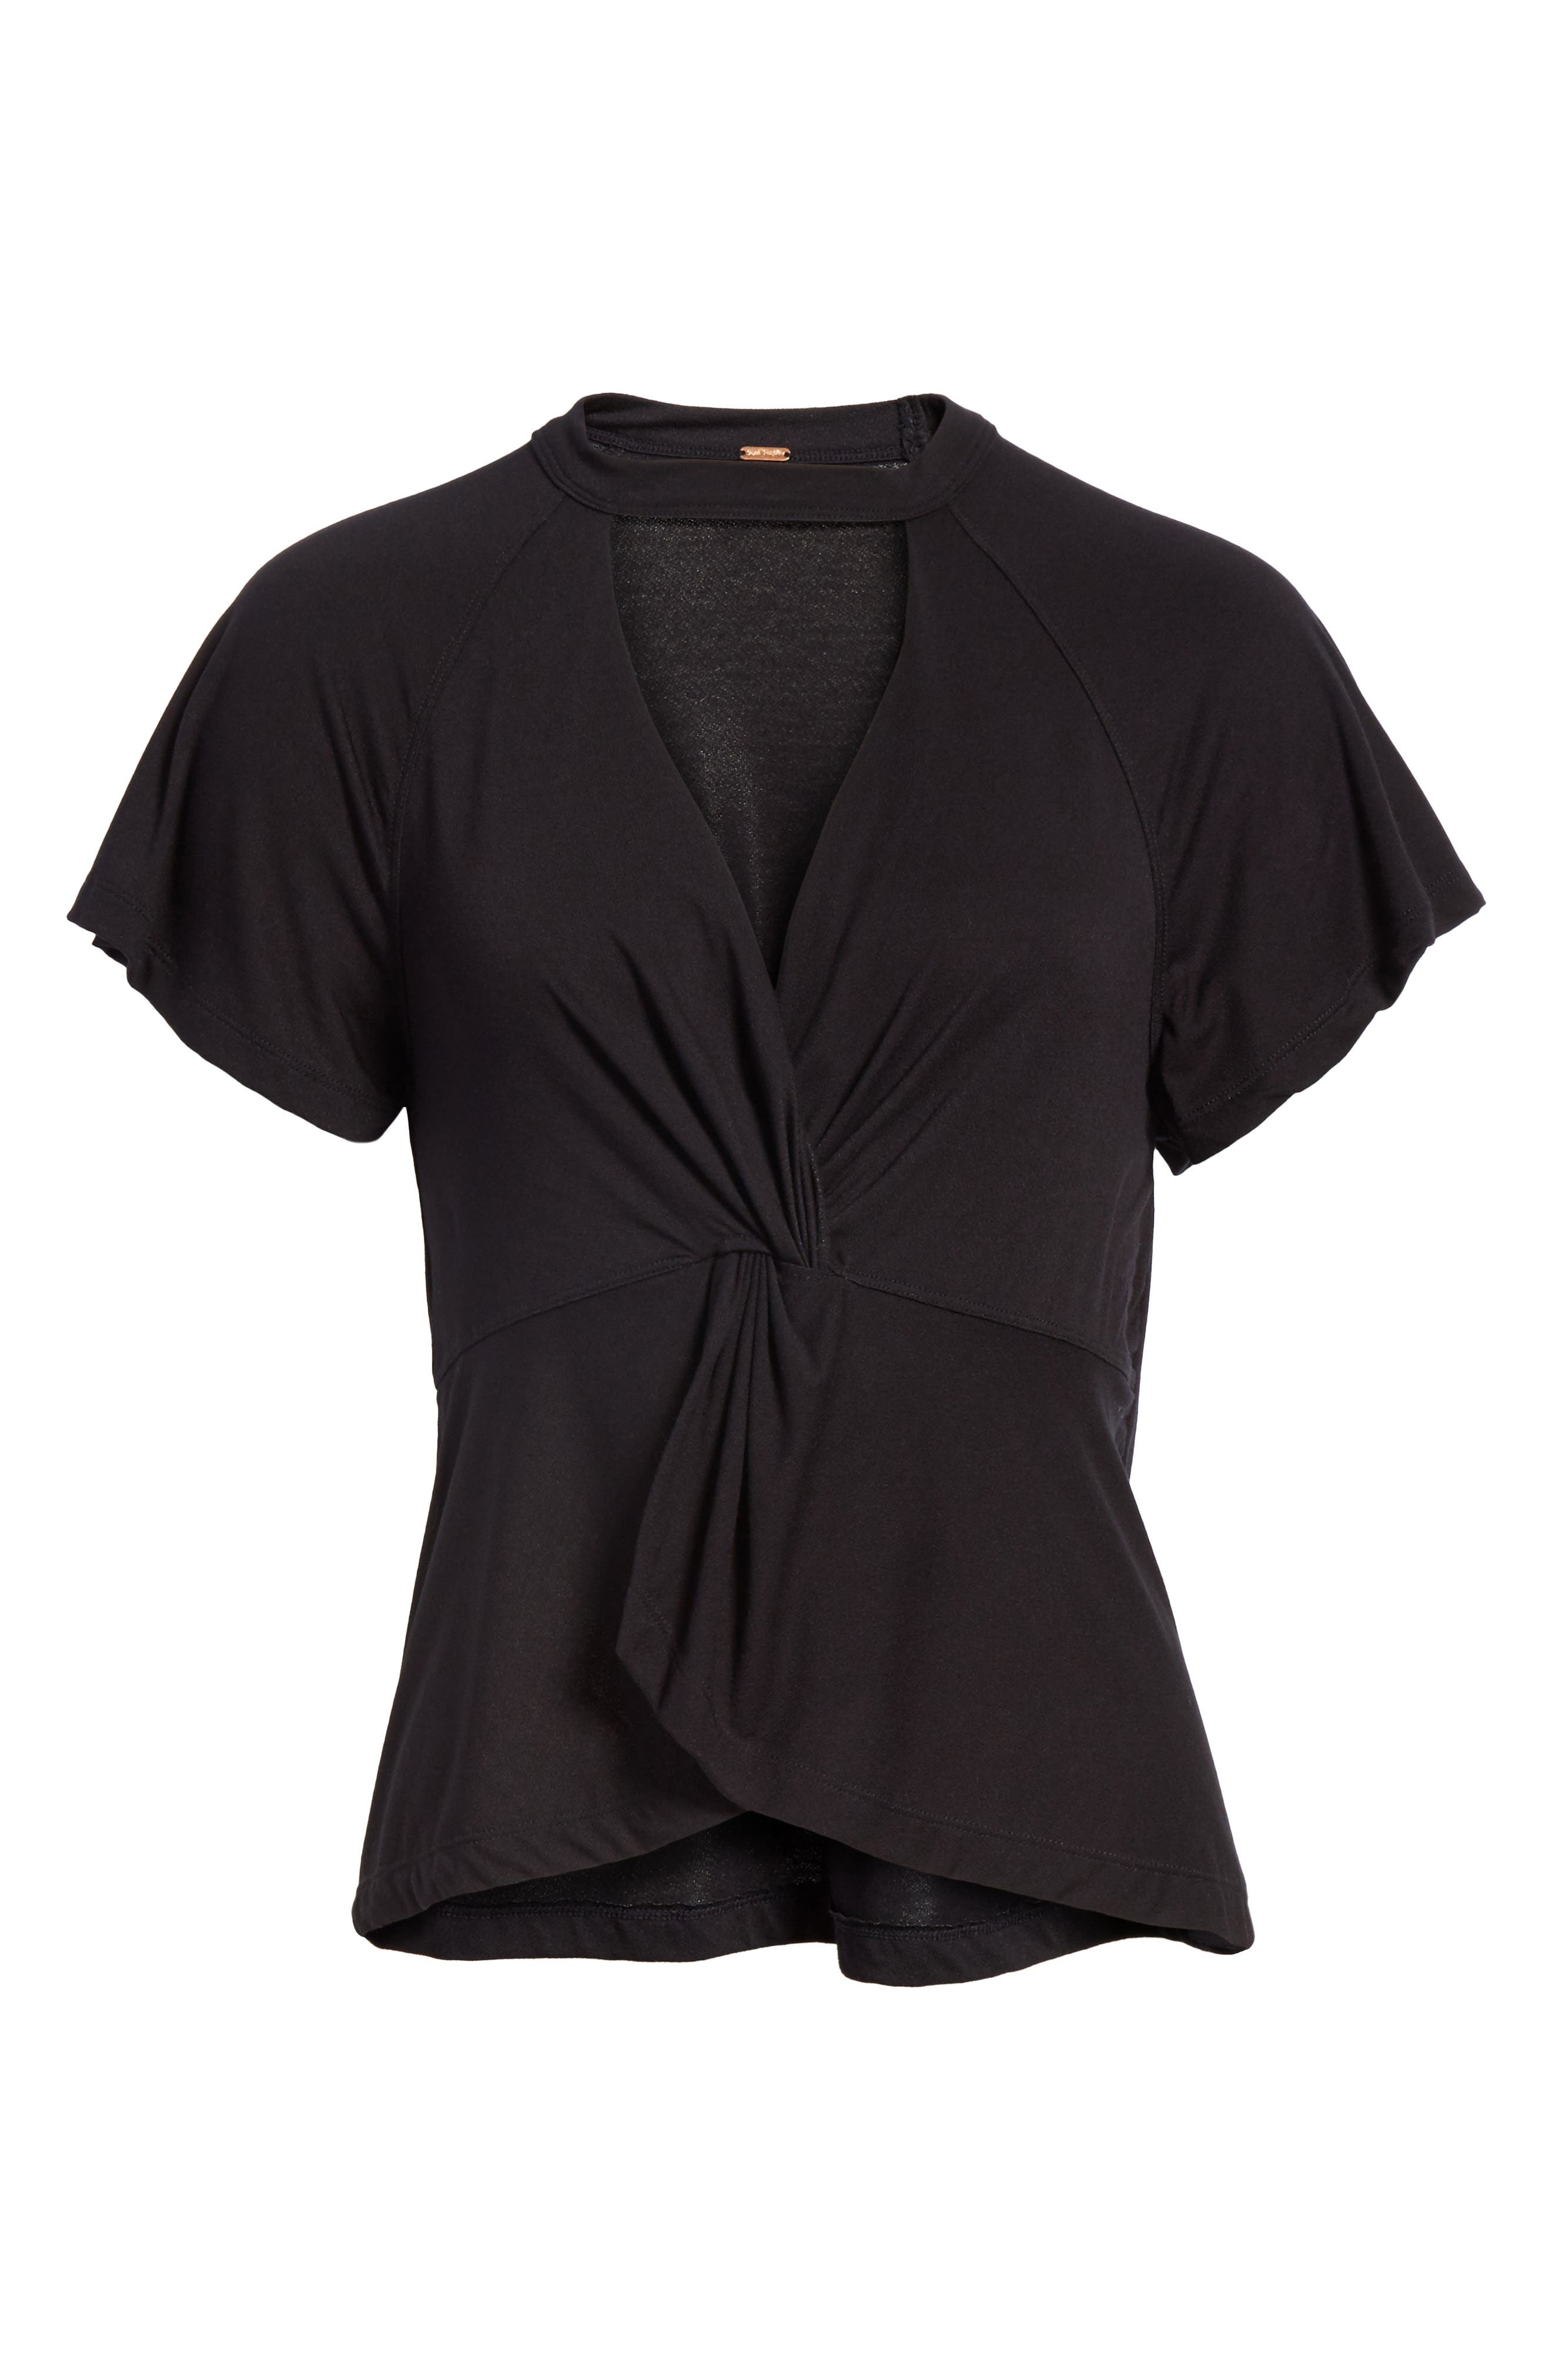 FREE PEOPLE,                             Just a Twist Top,                             Alternate thumbnail 6, color,                             001